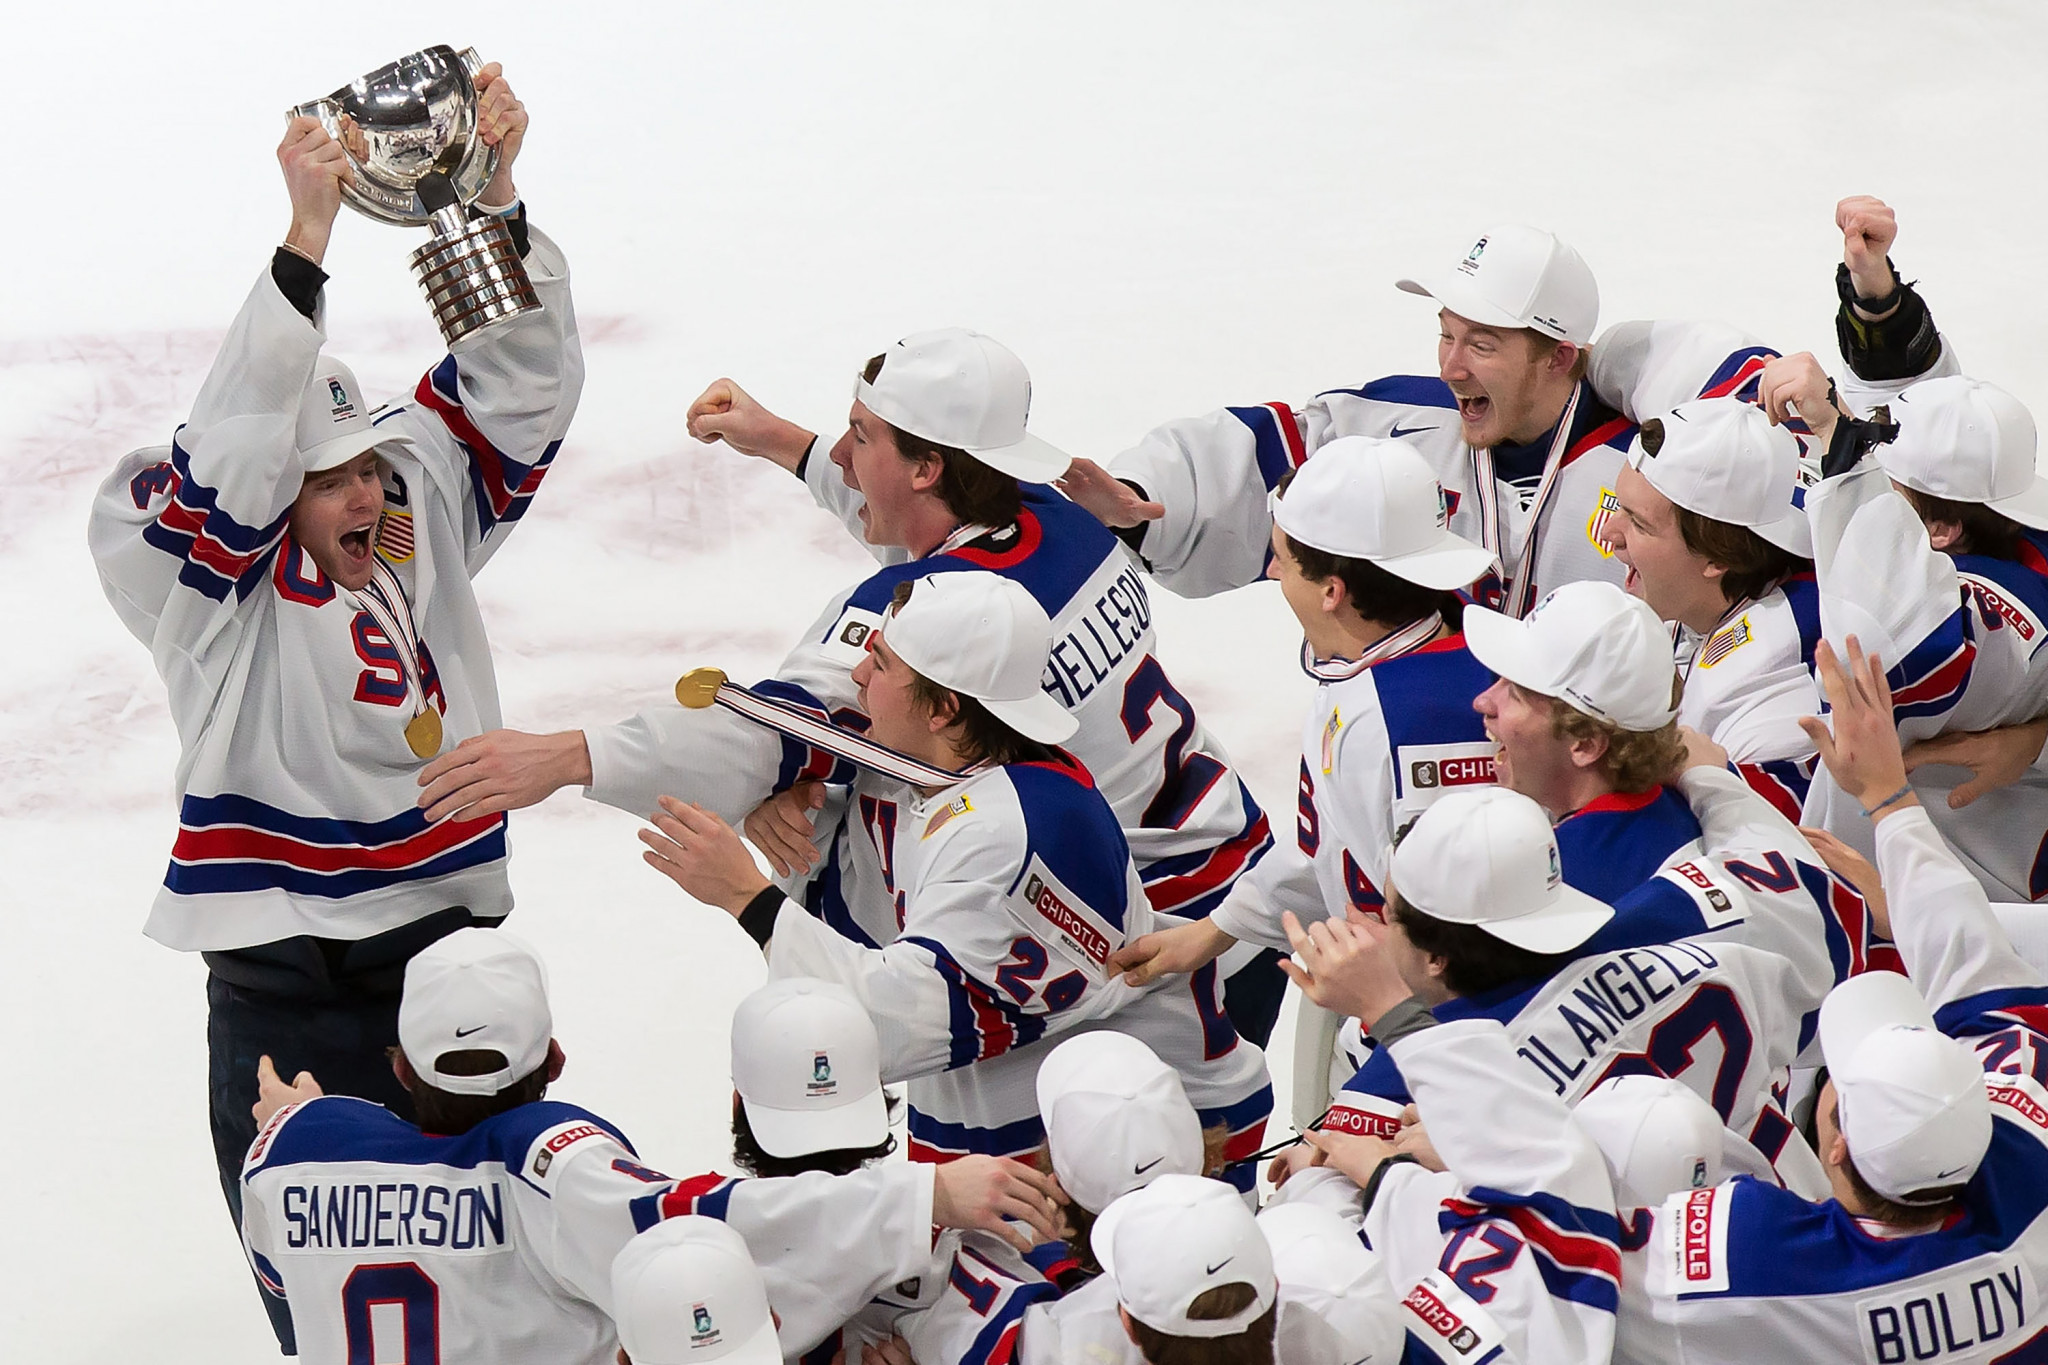 United States beat Canada to clinch fifth IIHF World Junior Championship title